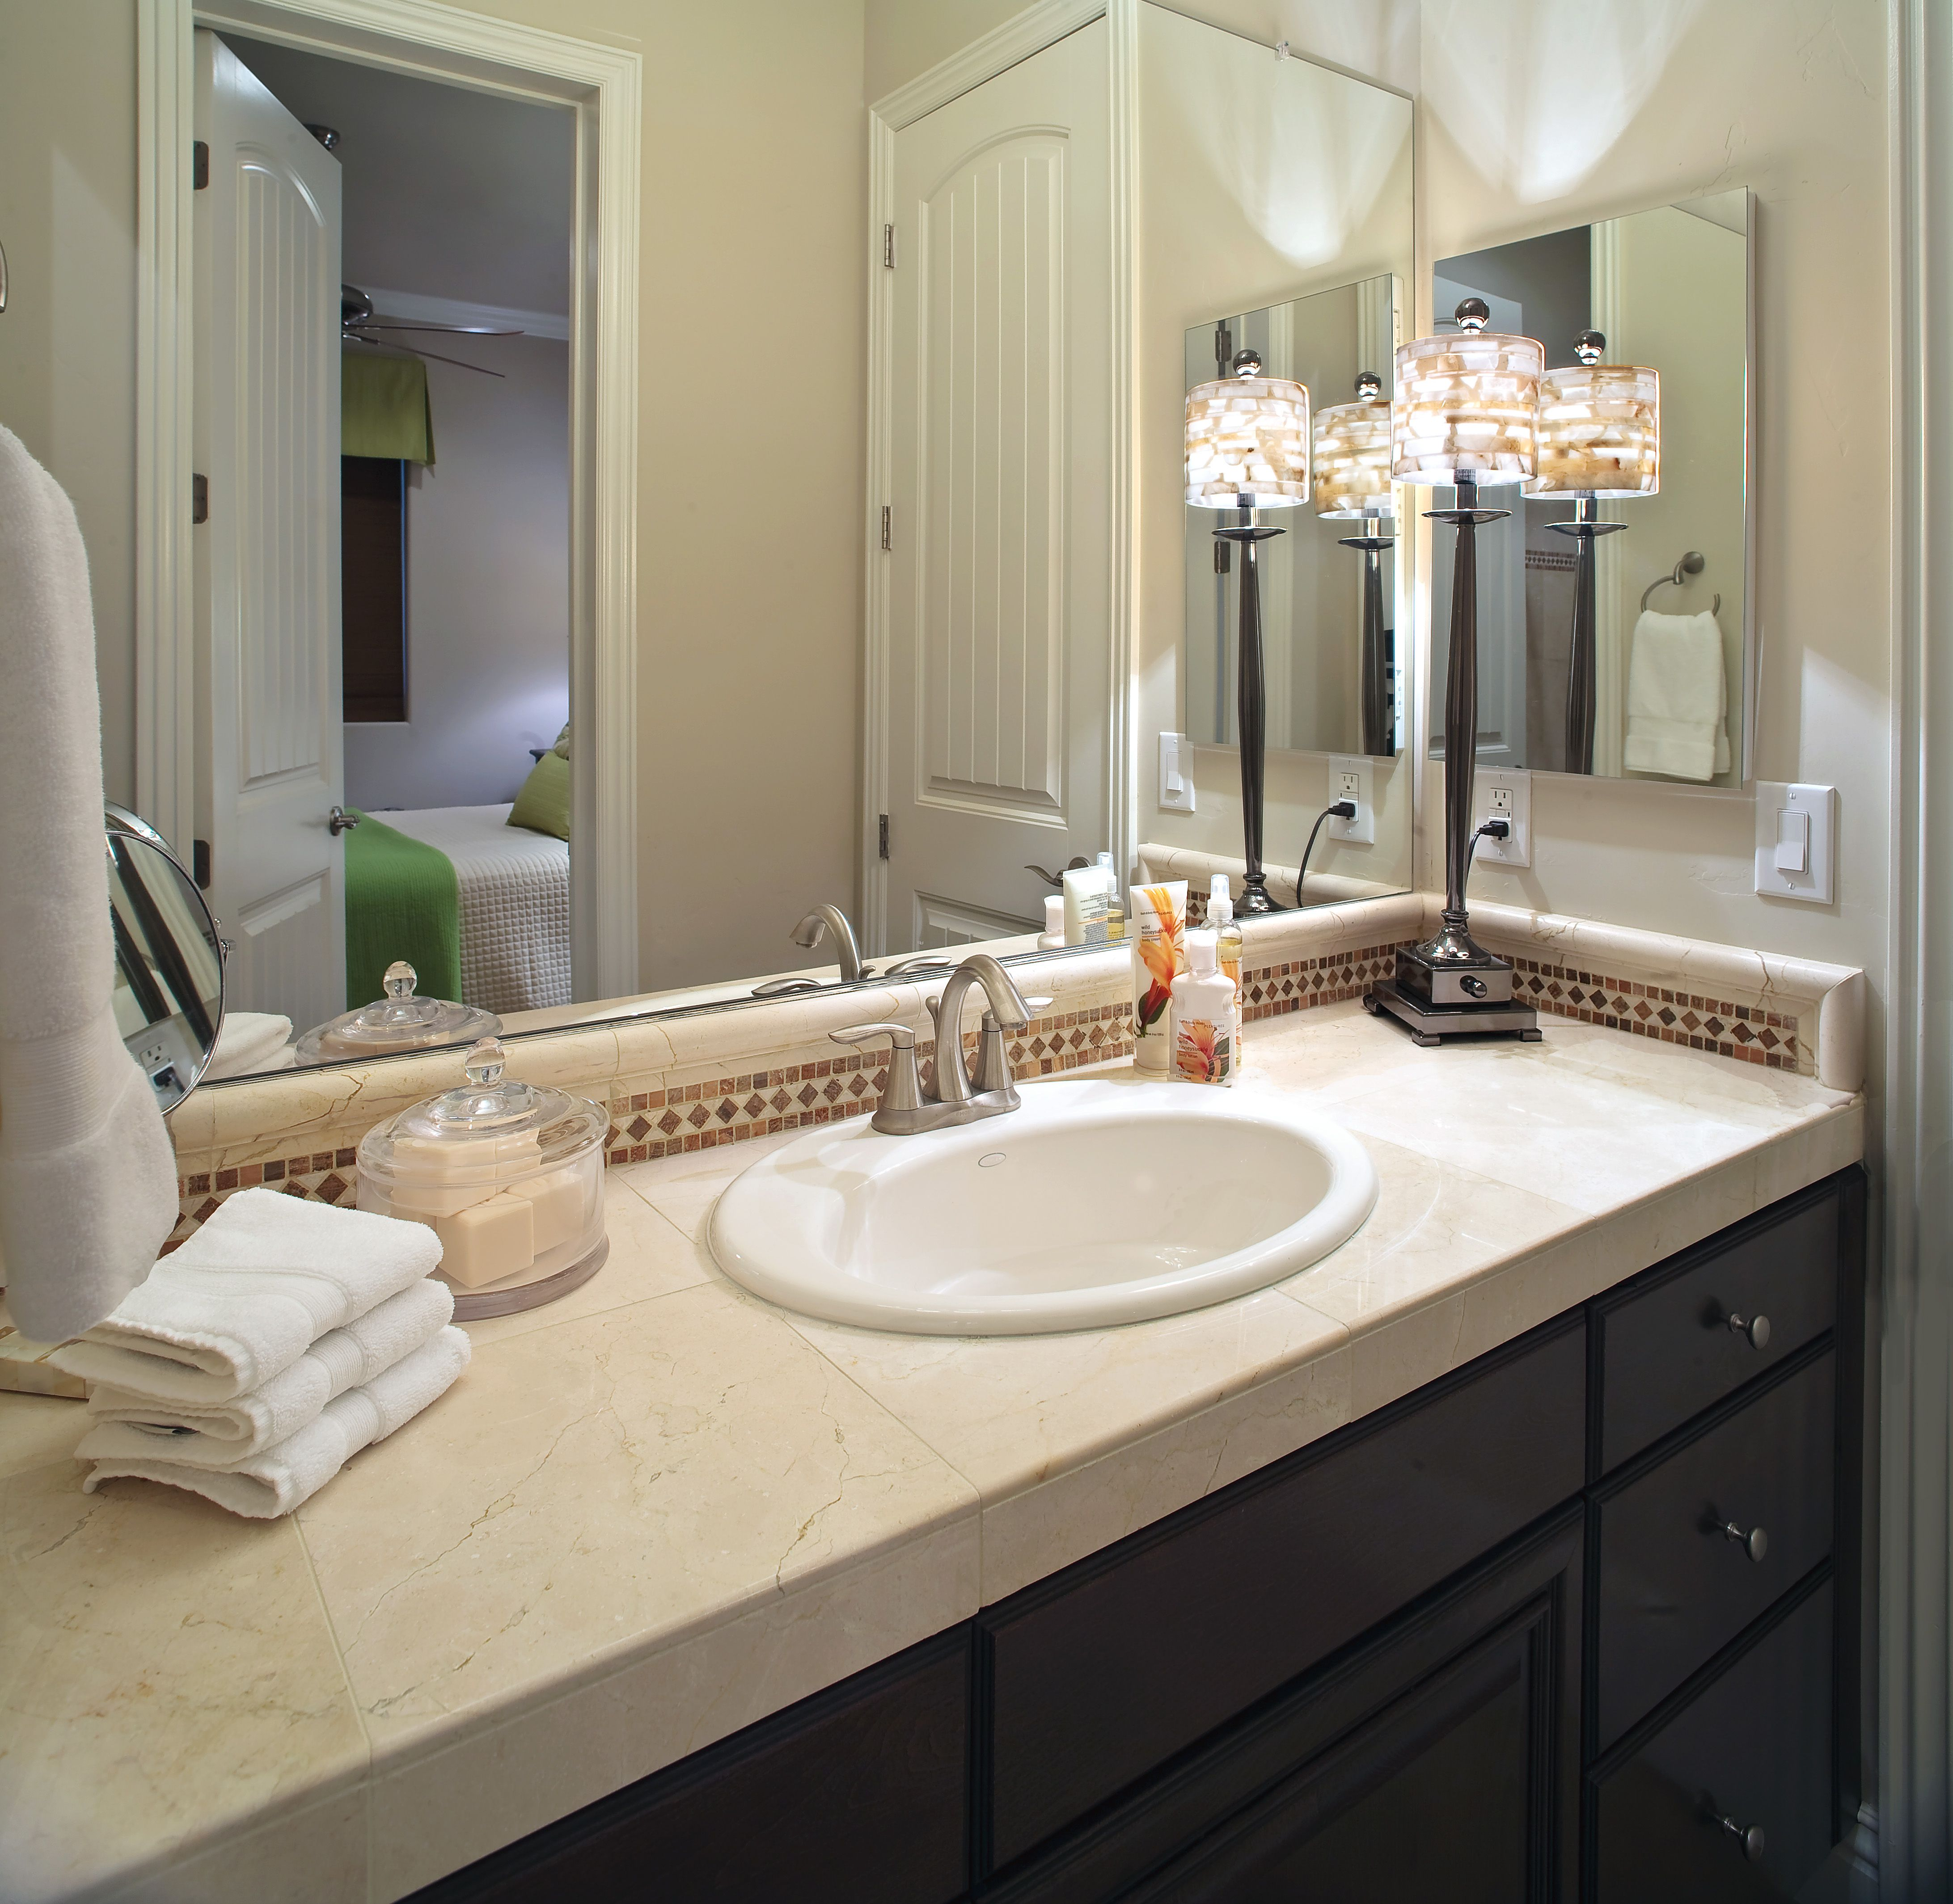 Unique Decorative Lighting Displayed on Black Vanity with Single Sink and Double Mirrors